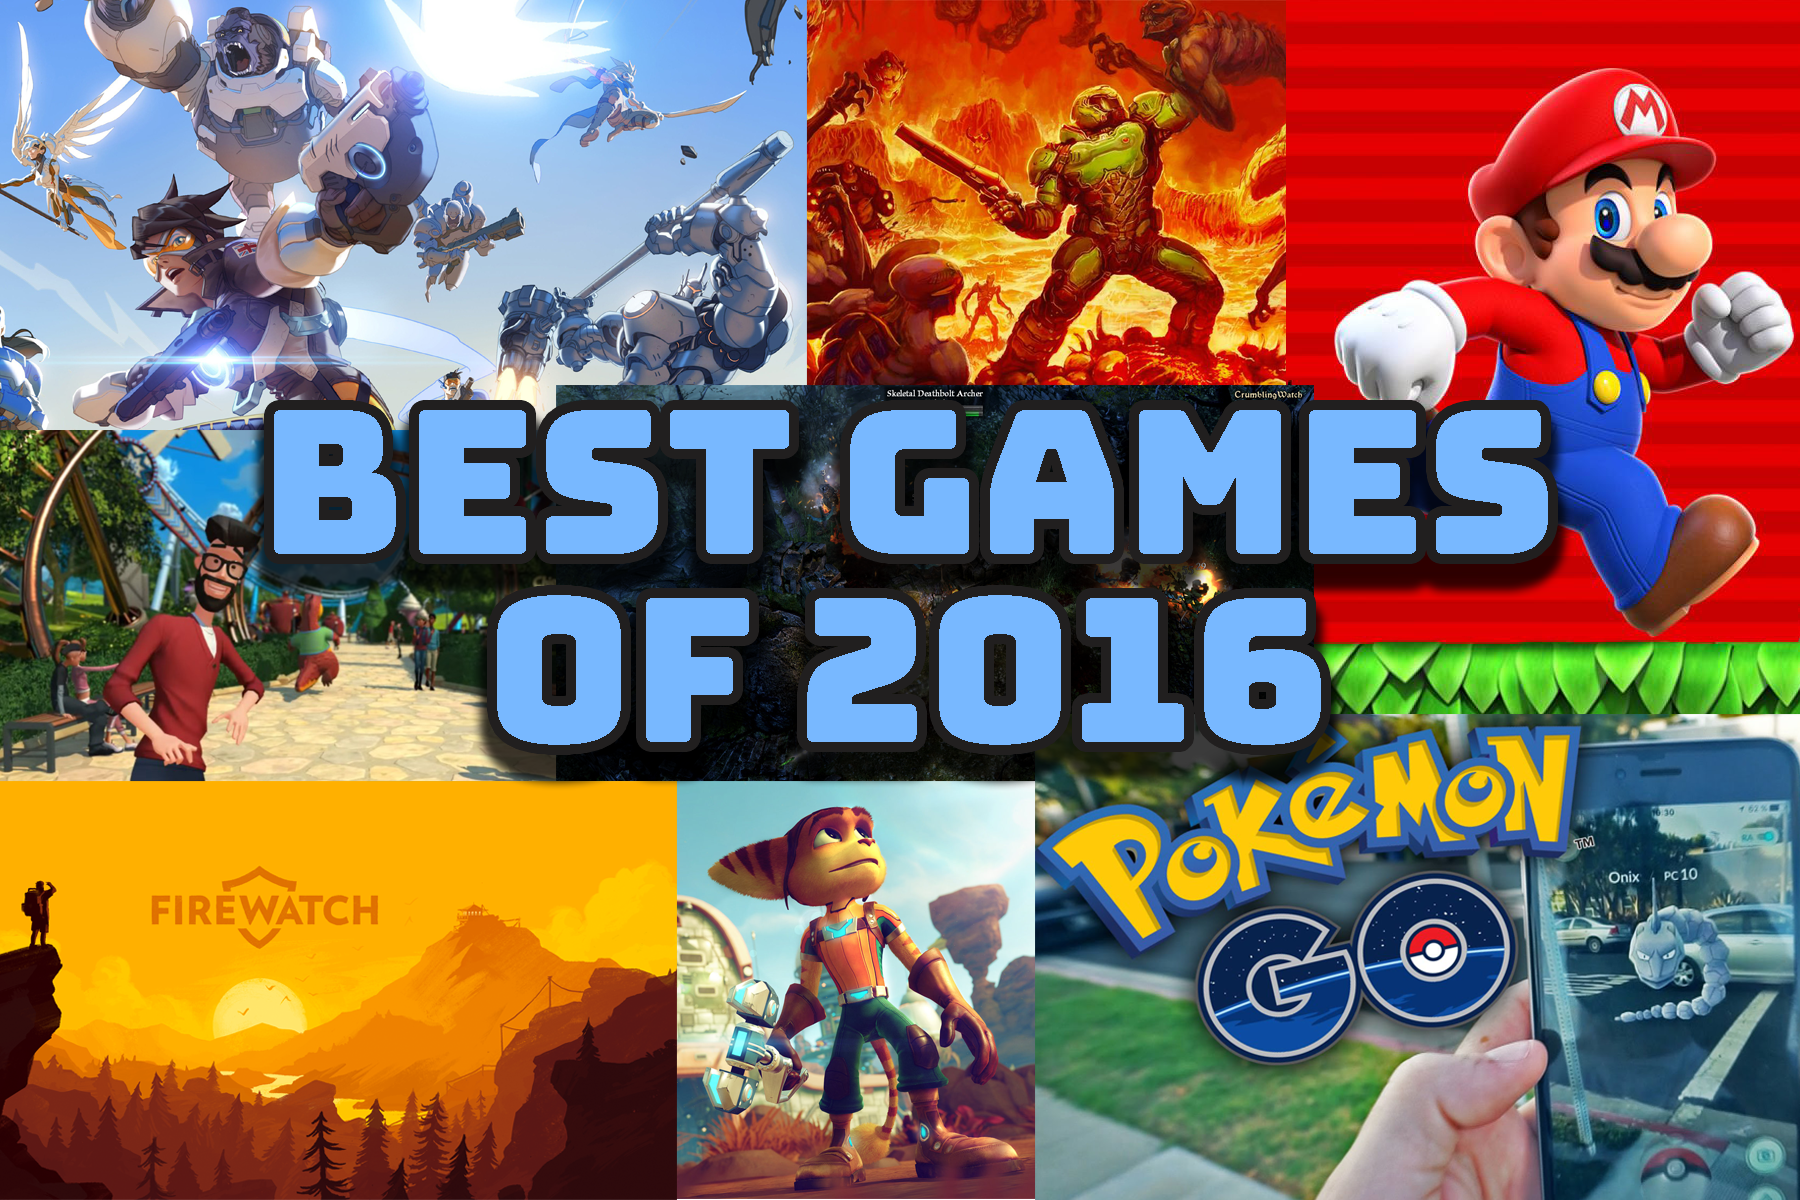 Best Games 2016 - Keep It Nerdy